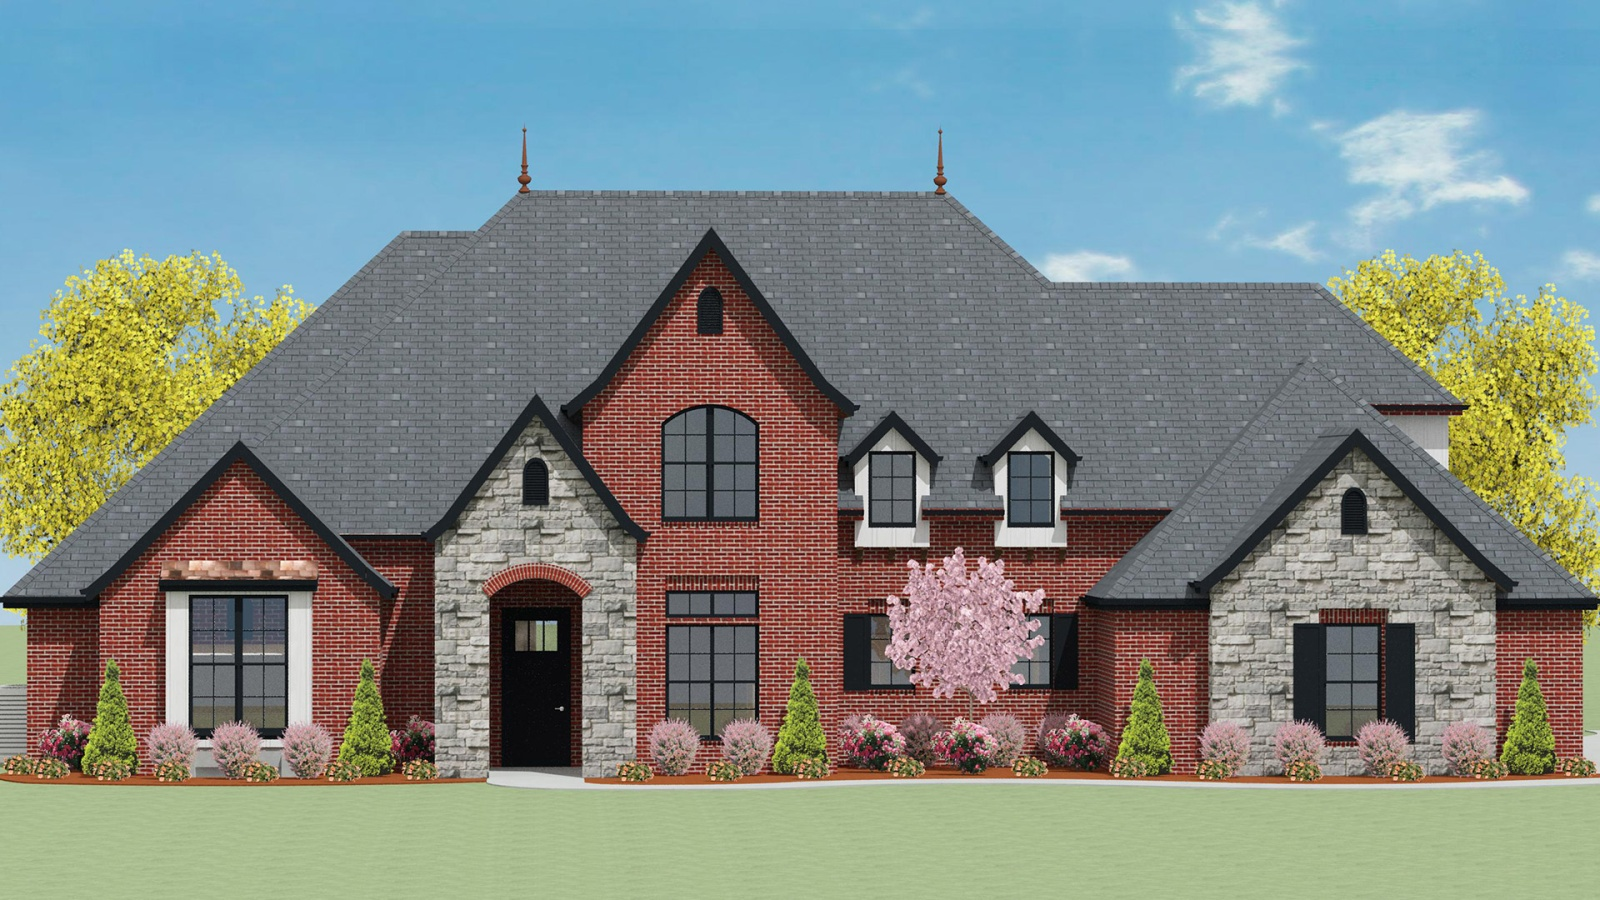 4 Bedrooms Bedrooms, ,4 BathroomsBathrooms,Custom Home,Home Plans,1070